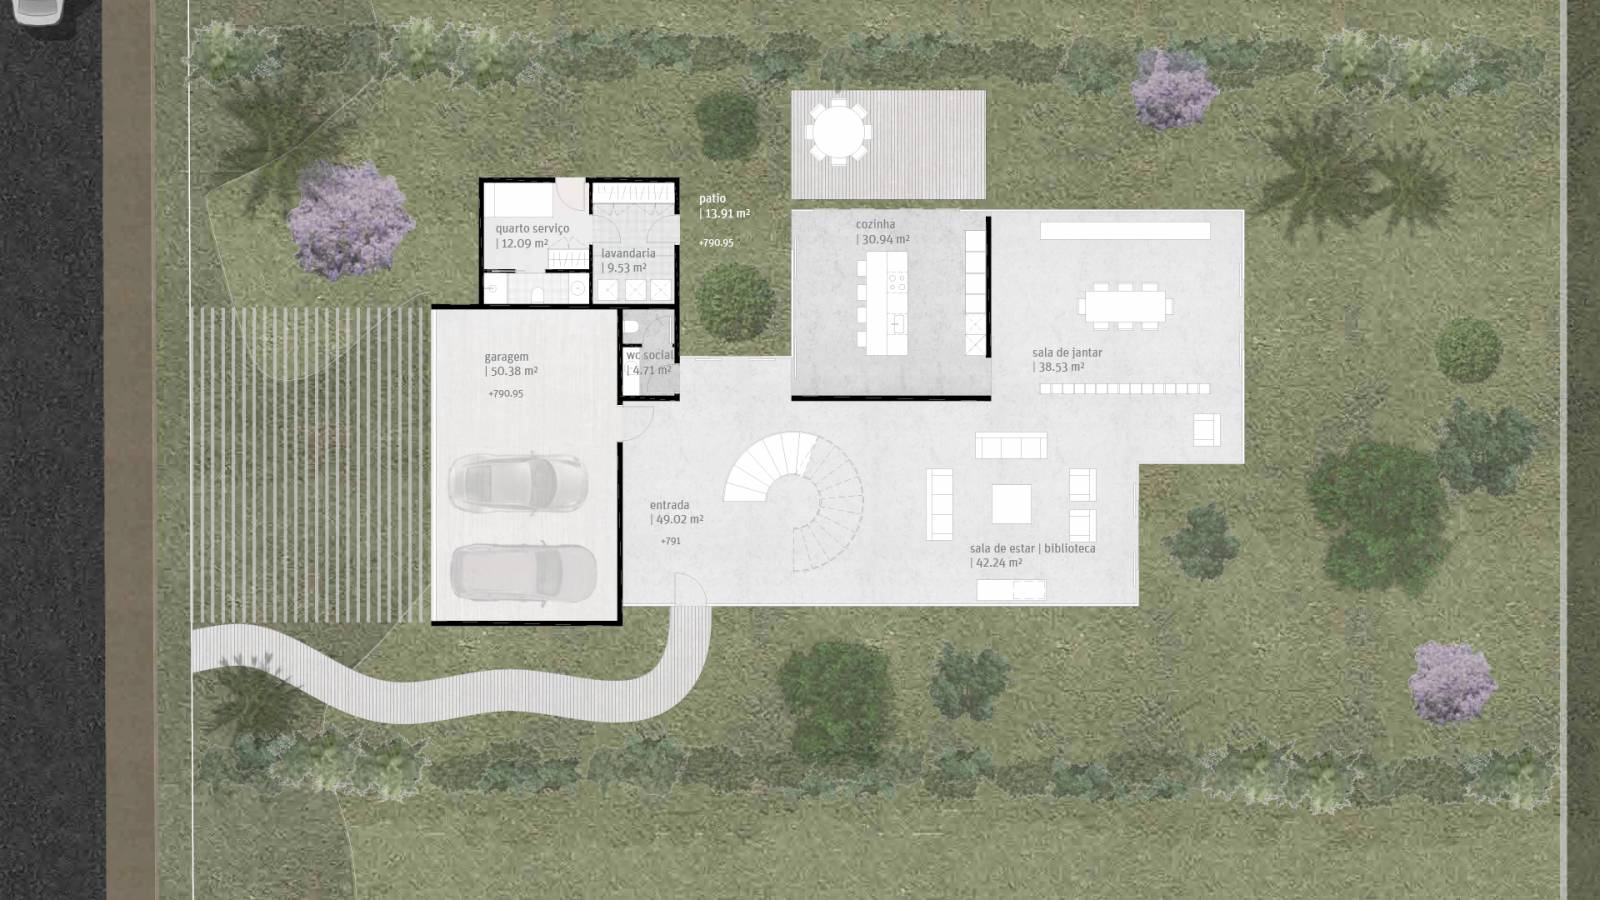 HOUSE #5 - LEVEL 1 PLAN - 6 case study houses - SPOL Architects